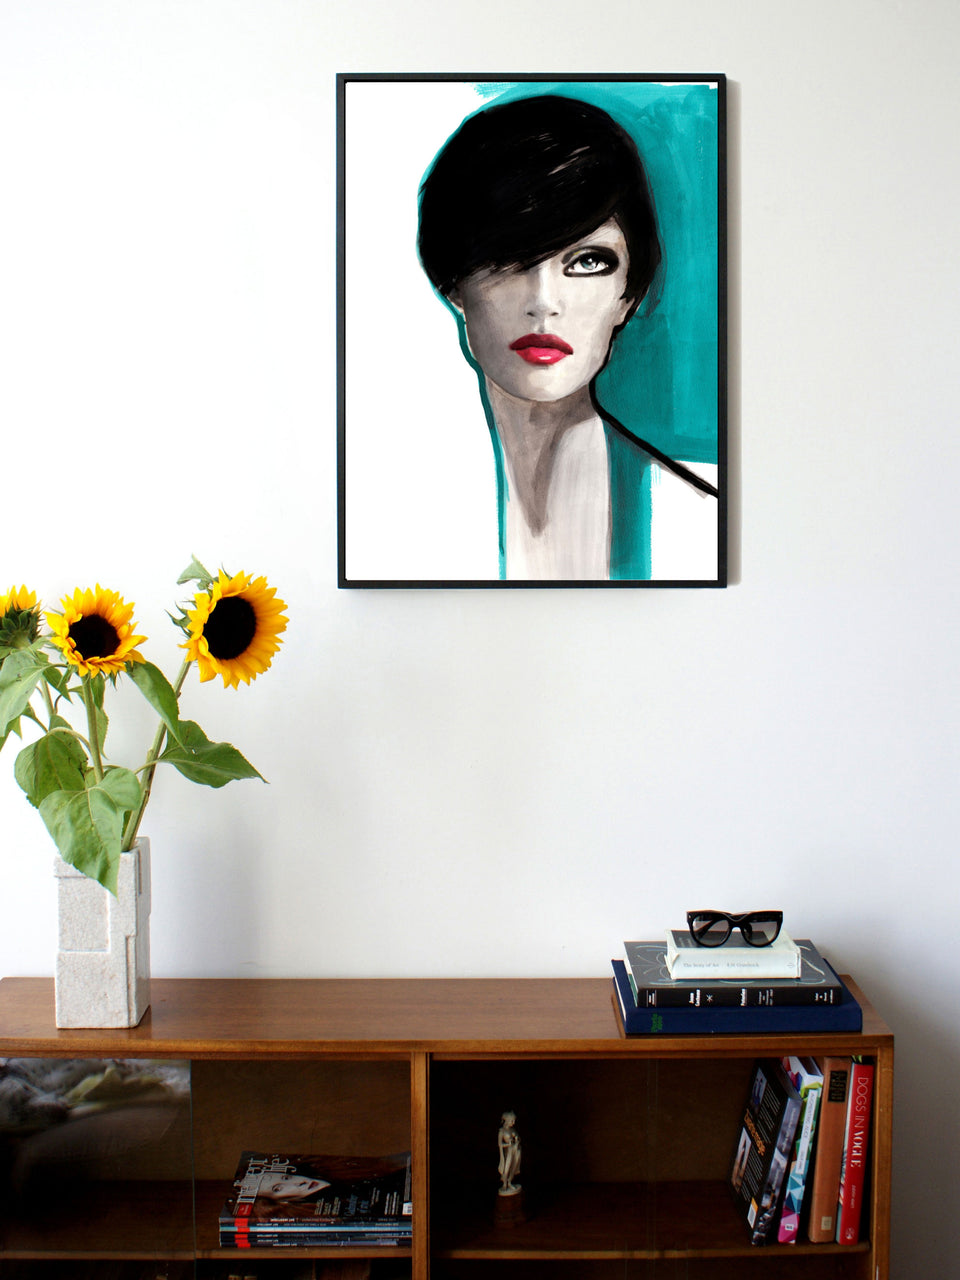 Fashion illustration print of Portrait Blue by Sjoukje Bierma - portrait of a woman - 60 x 80 cm framed